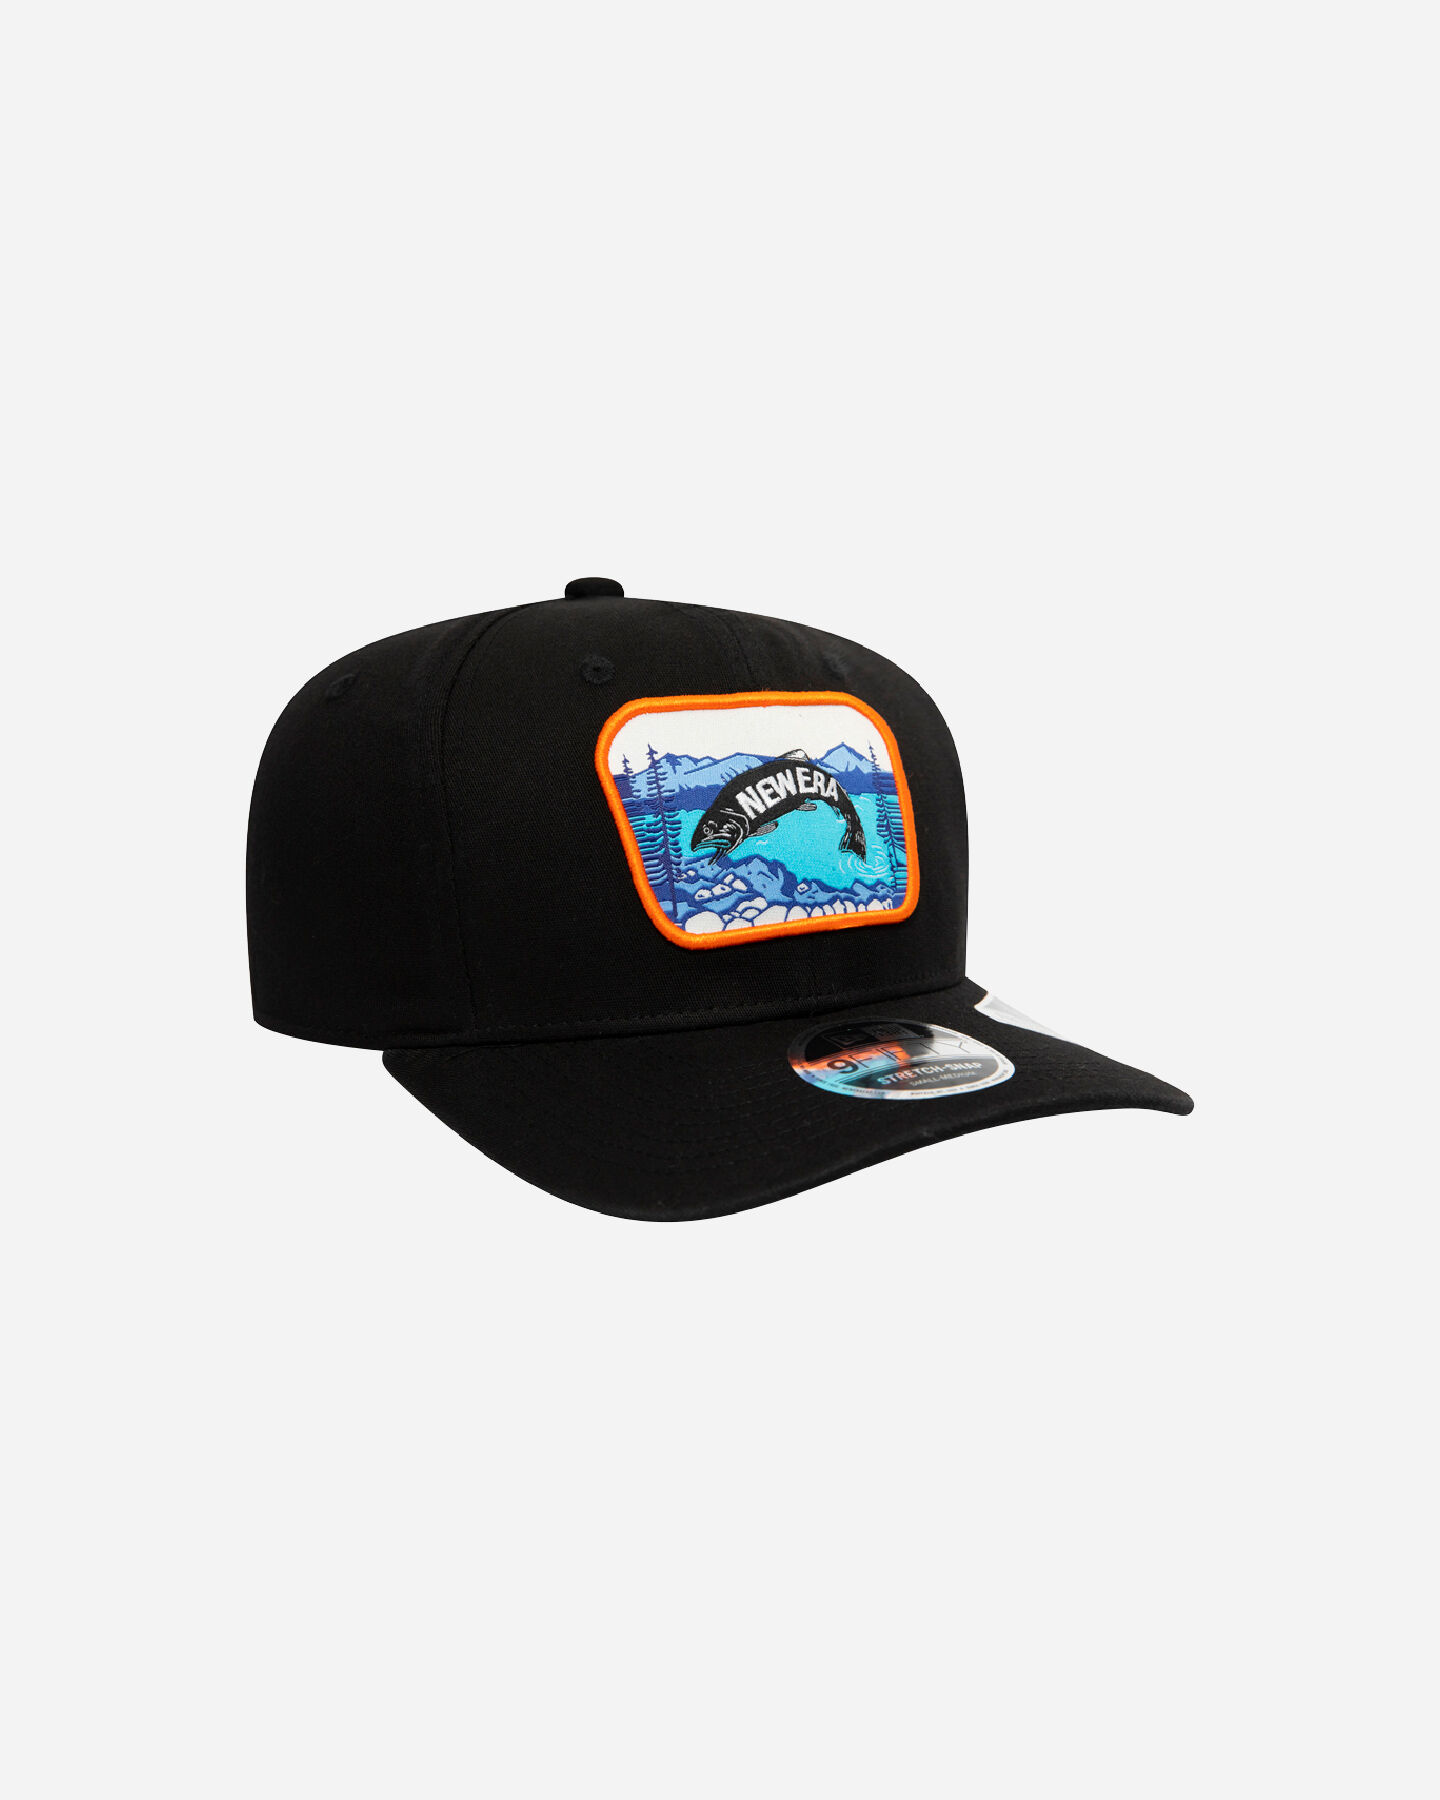 Cappellino NEW ERA 9FIFTY STRETCH SNAP OUTDOOR  S5238824 scatto 2